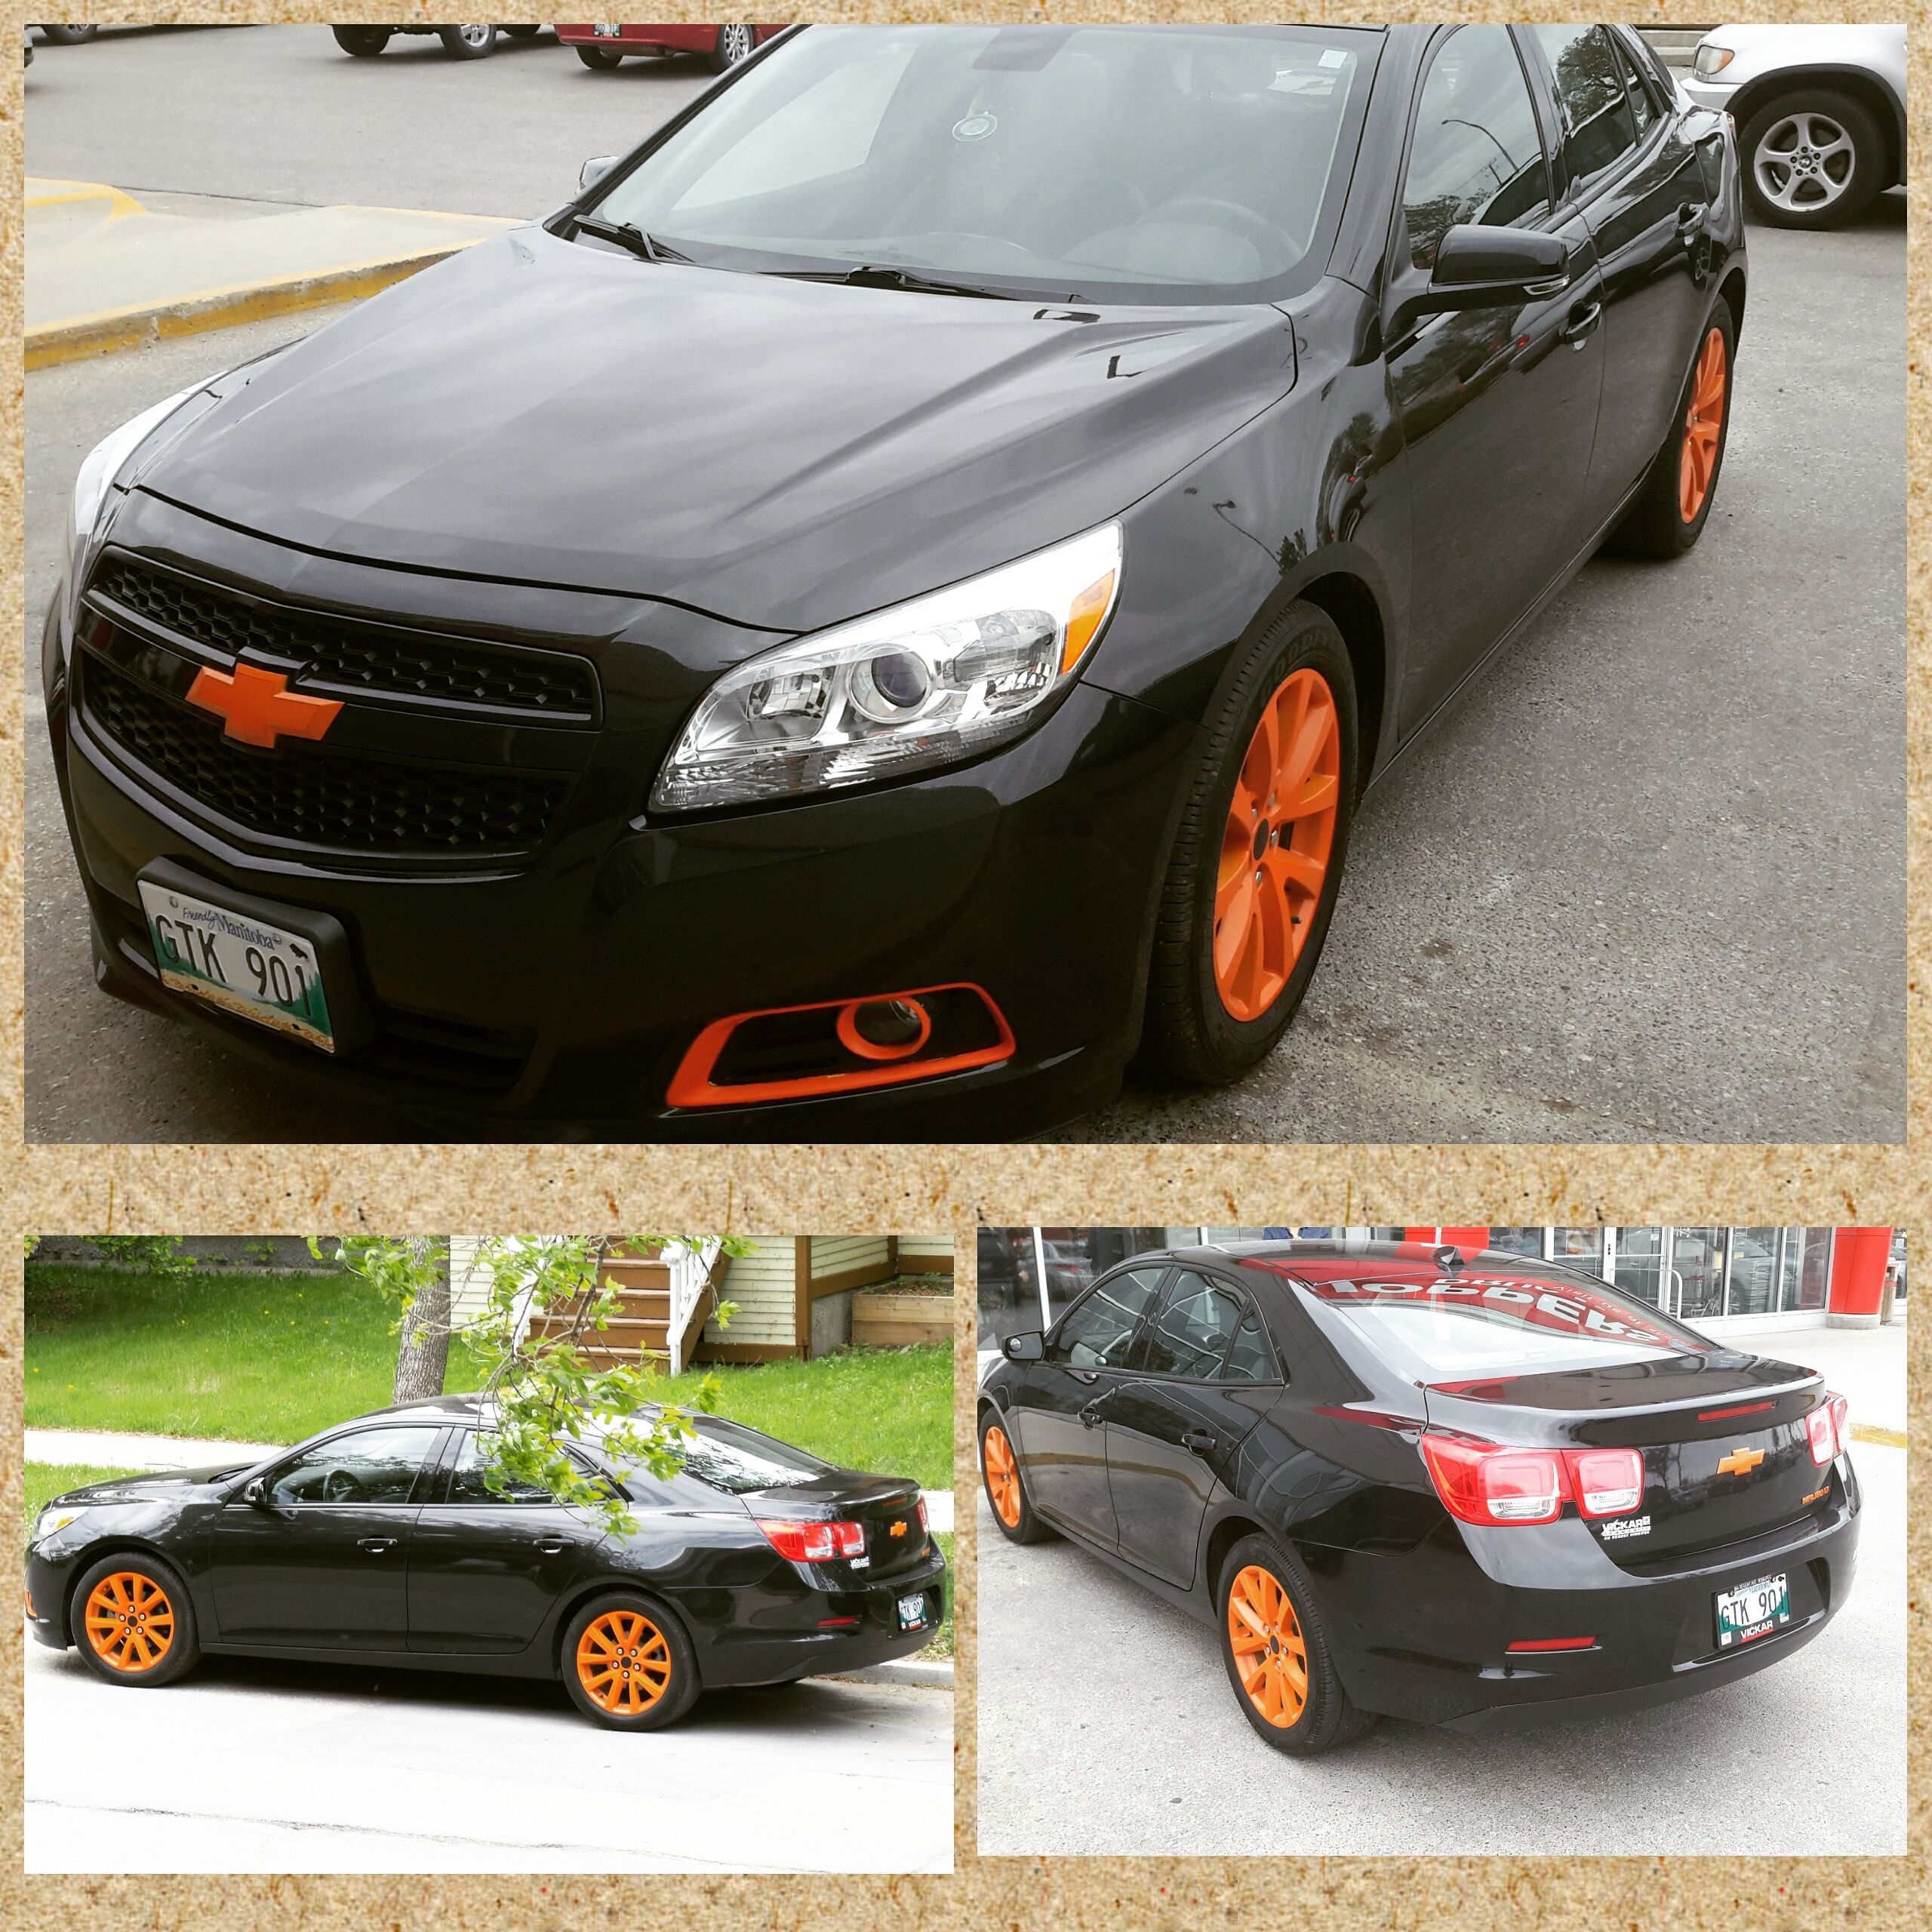 My 2013 Chevy Malibu Plasti Dipped Black Trims And Tangerine